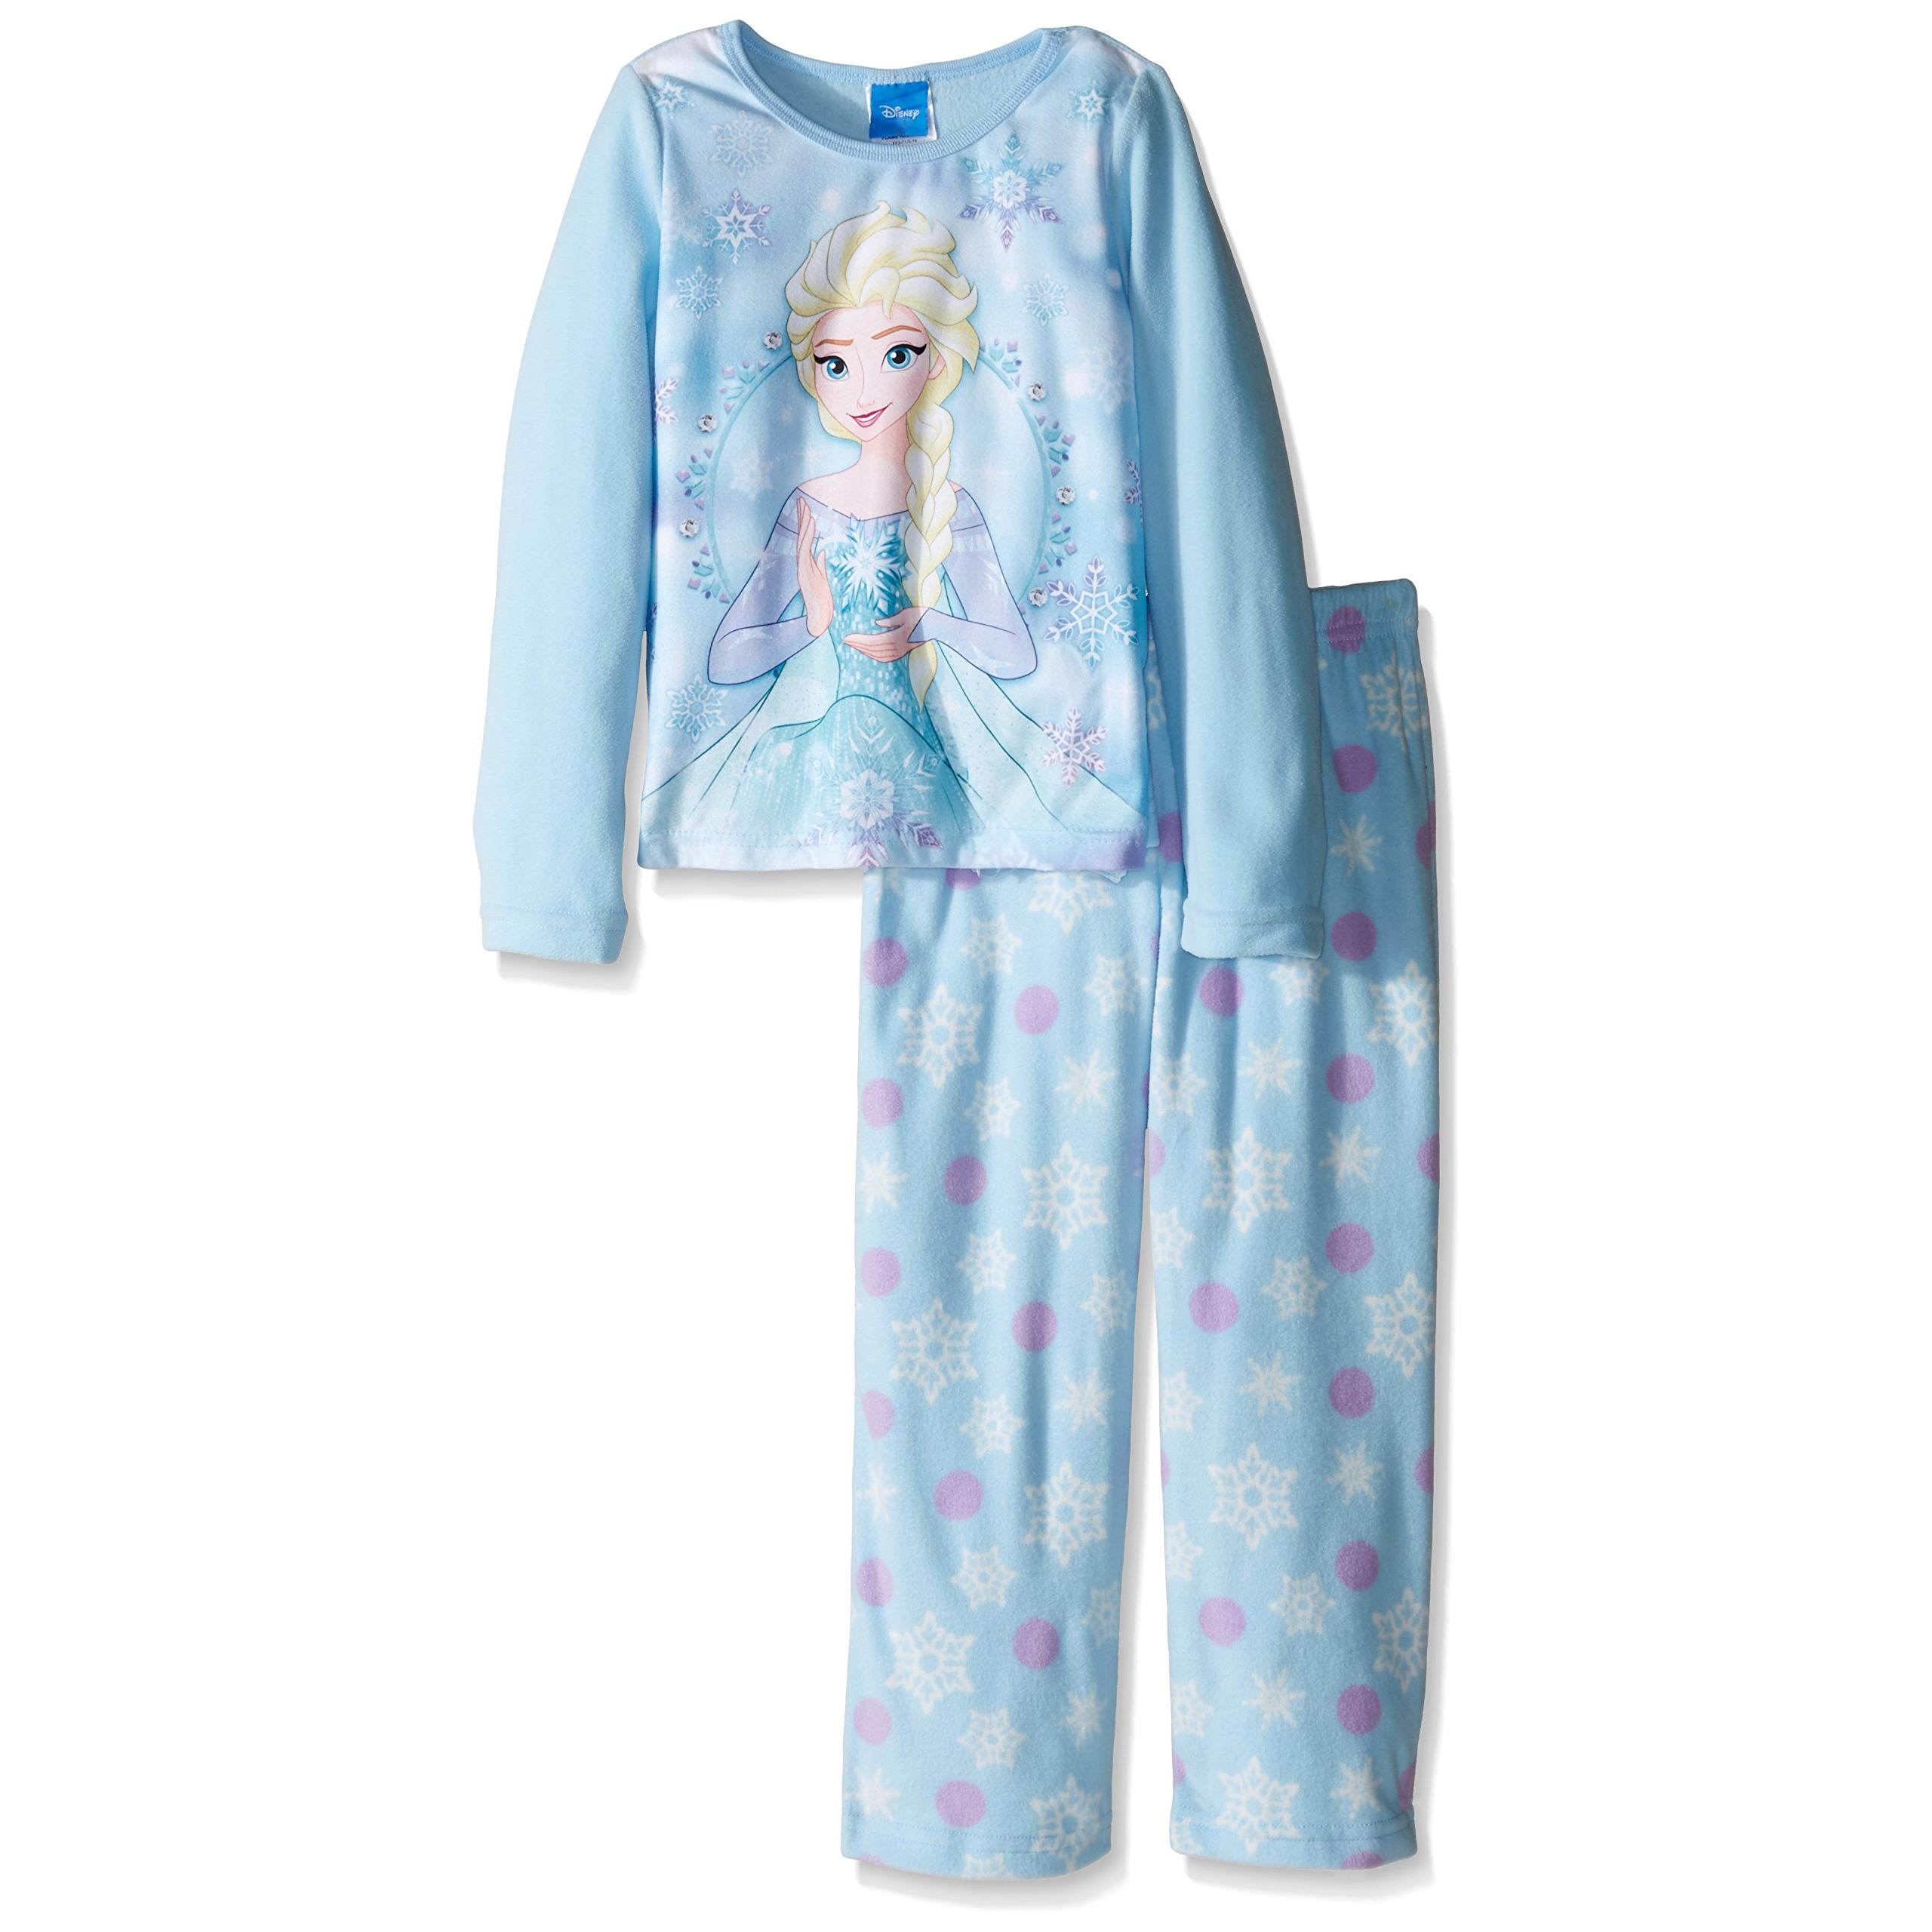 b6145a0f6 Disney Girls  Frozen Elsa 2-Piece Pajama Set